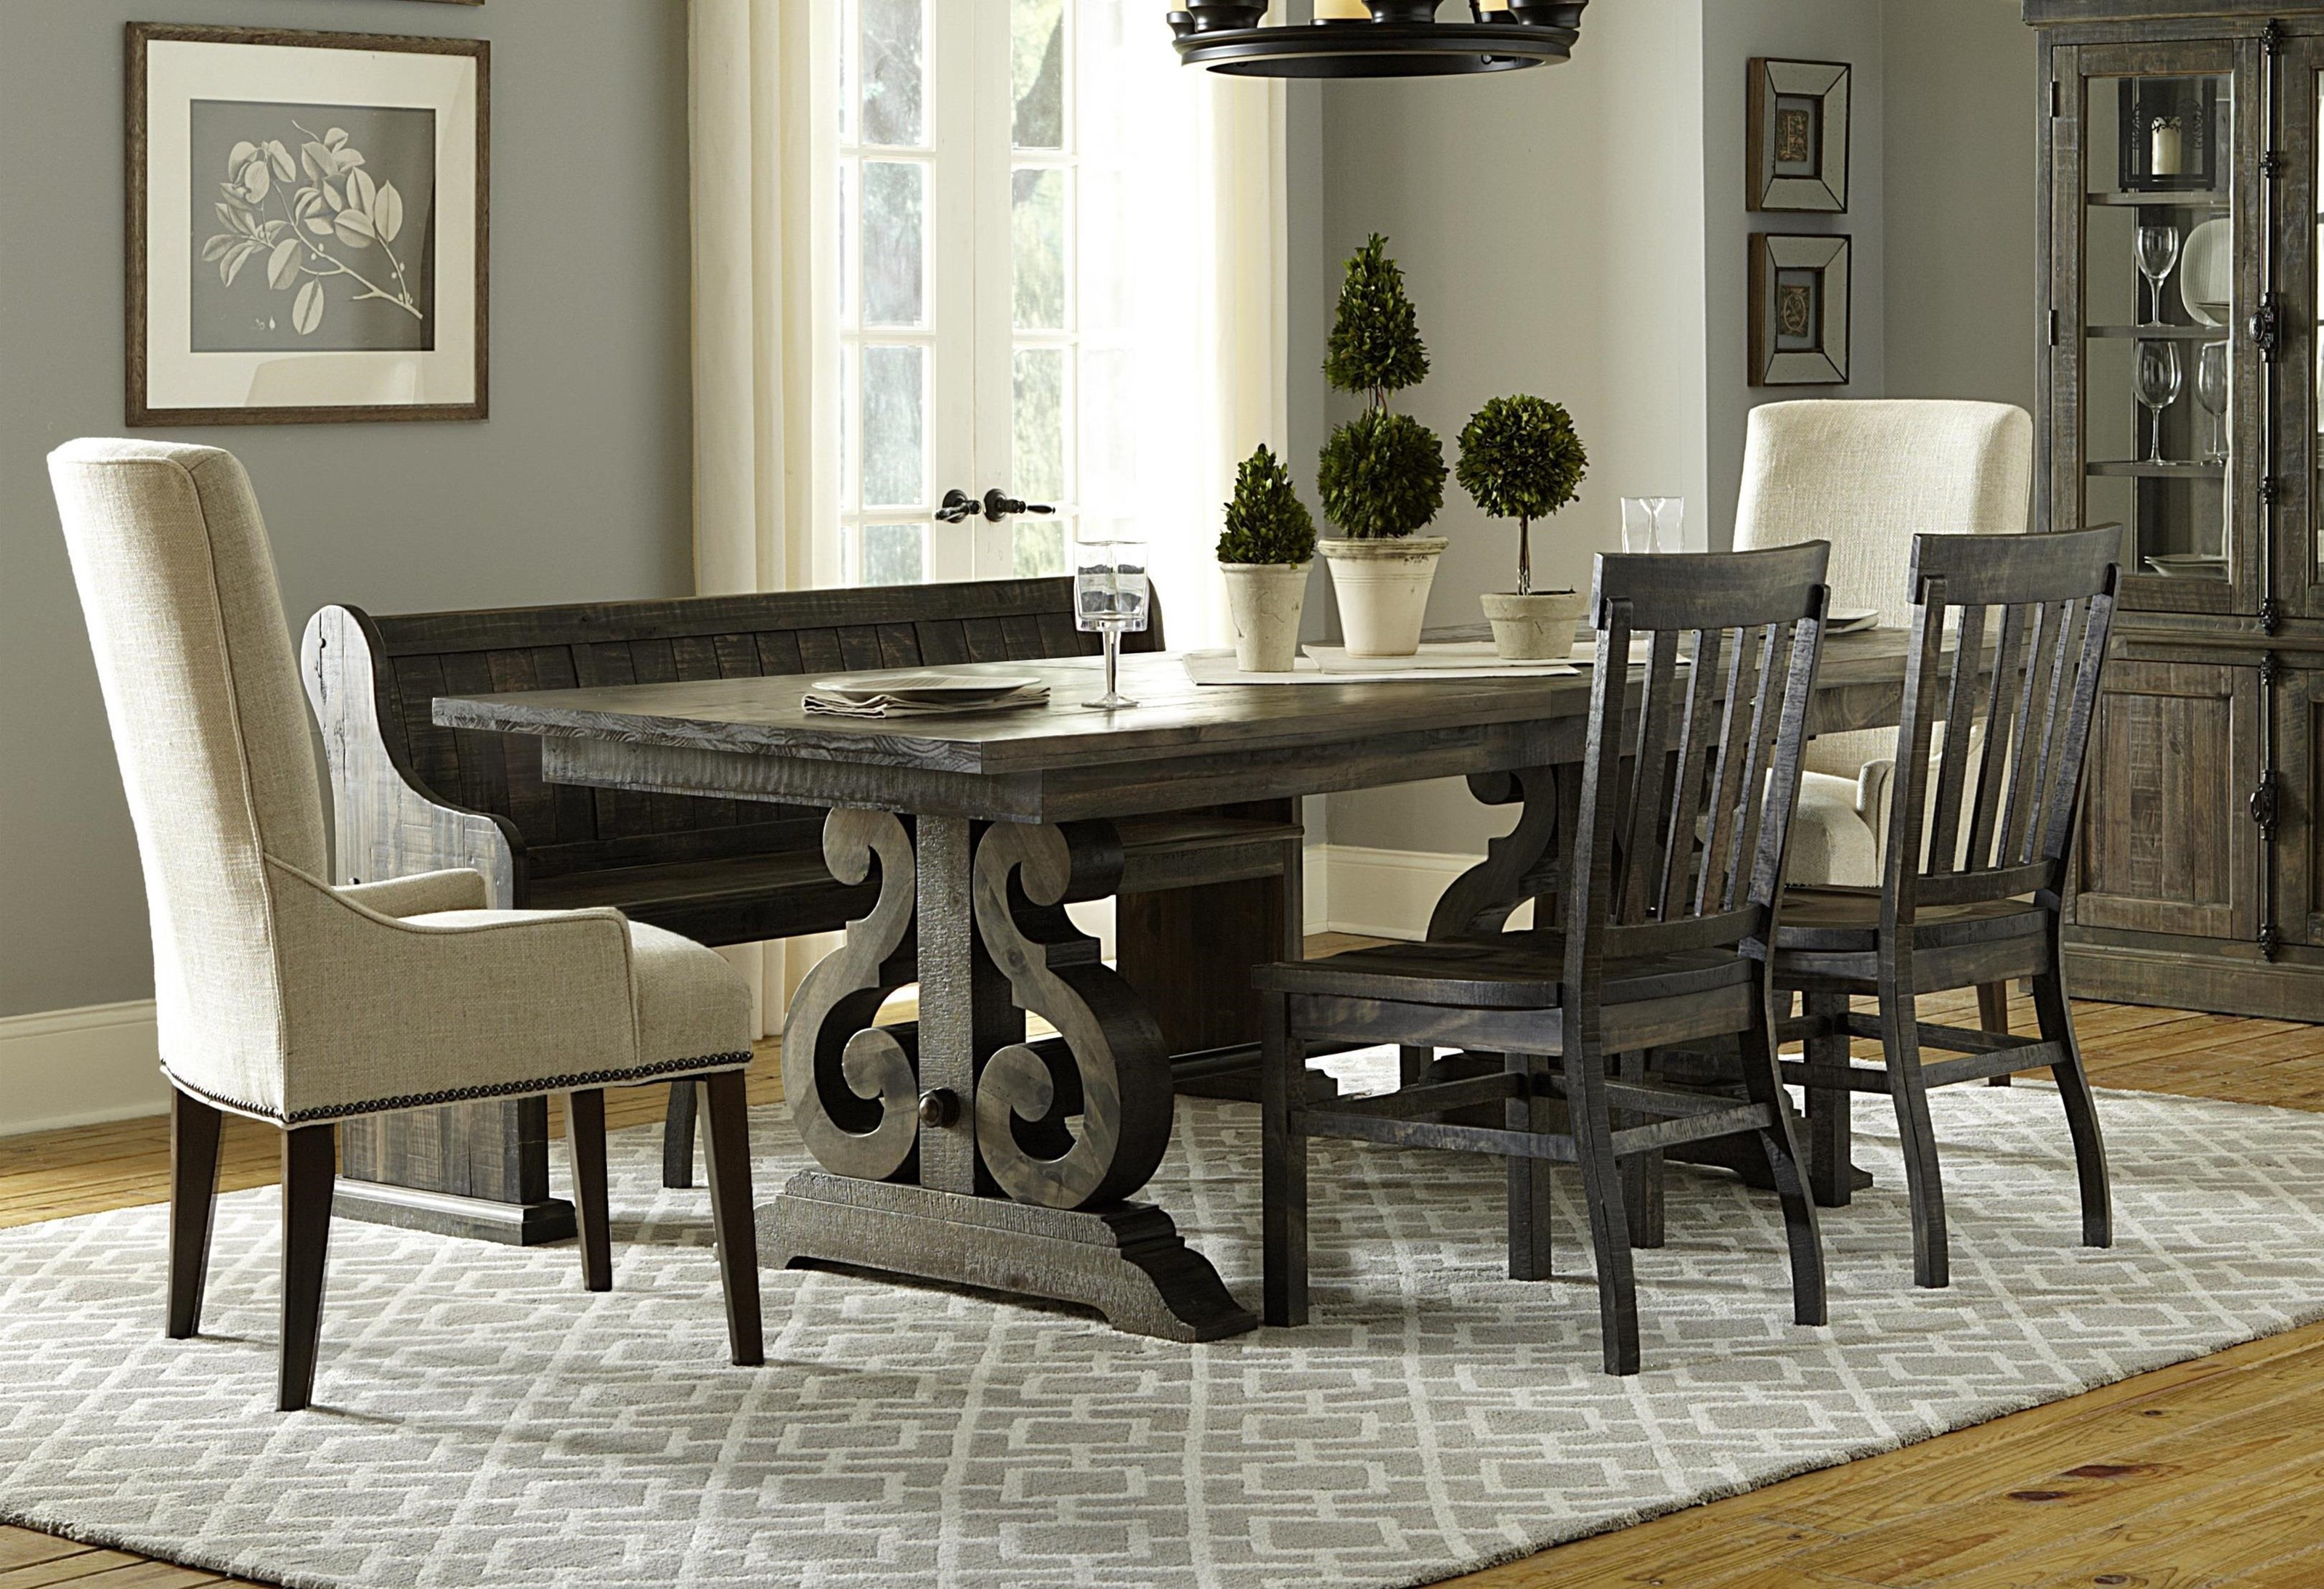 Captivating Magnussen Home BellamyDining Table, 3 Wooden Chairs, 2 Upholstered